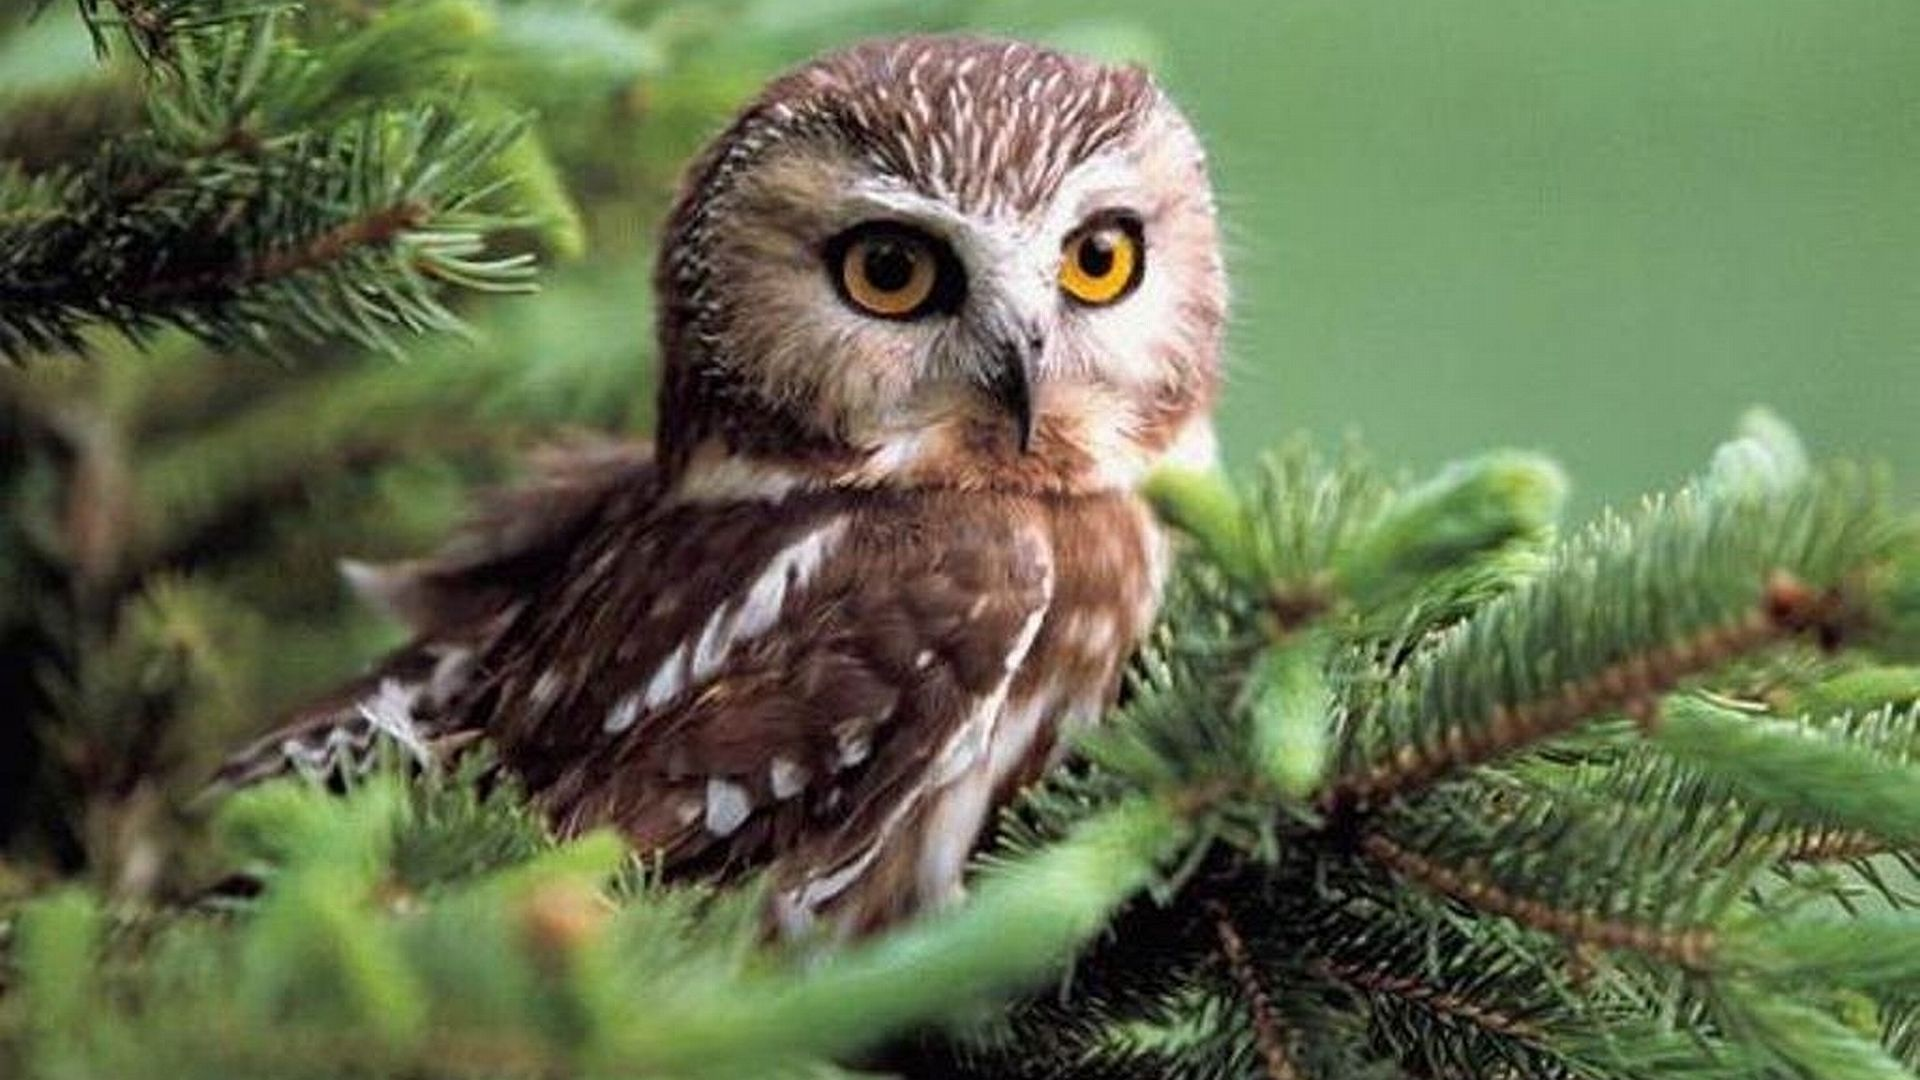 Owl wallpaper 2 for the love of owls owl wallpaper - Free funny animal screensavers ...